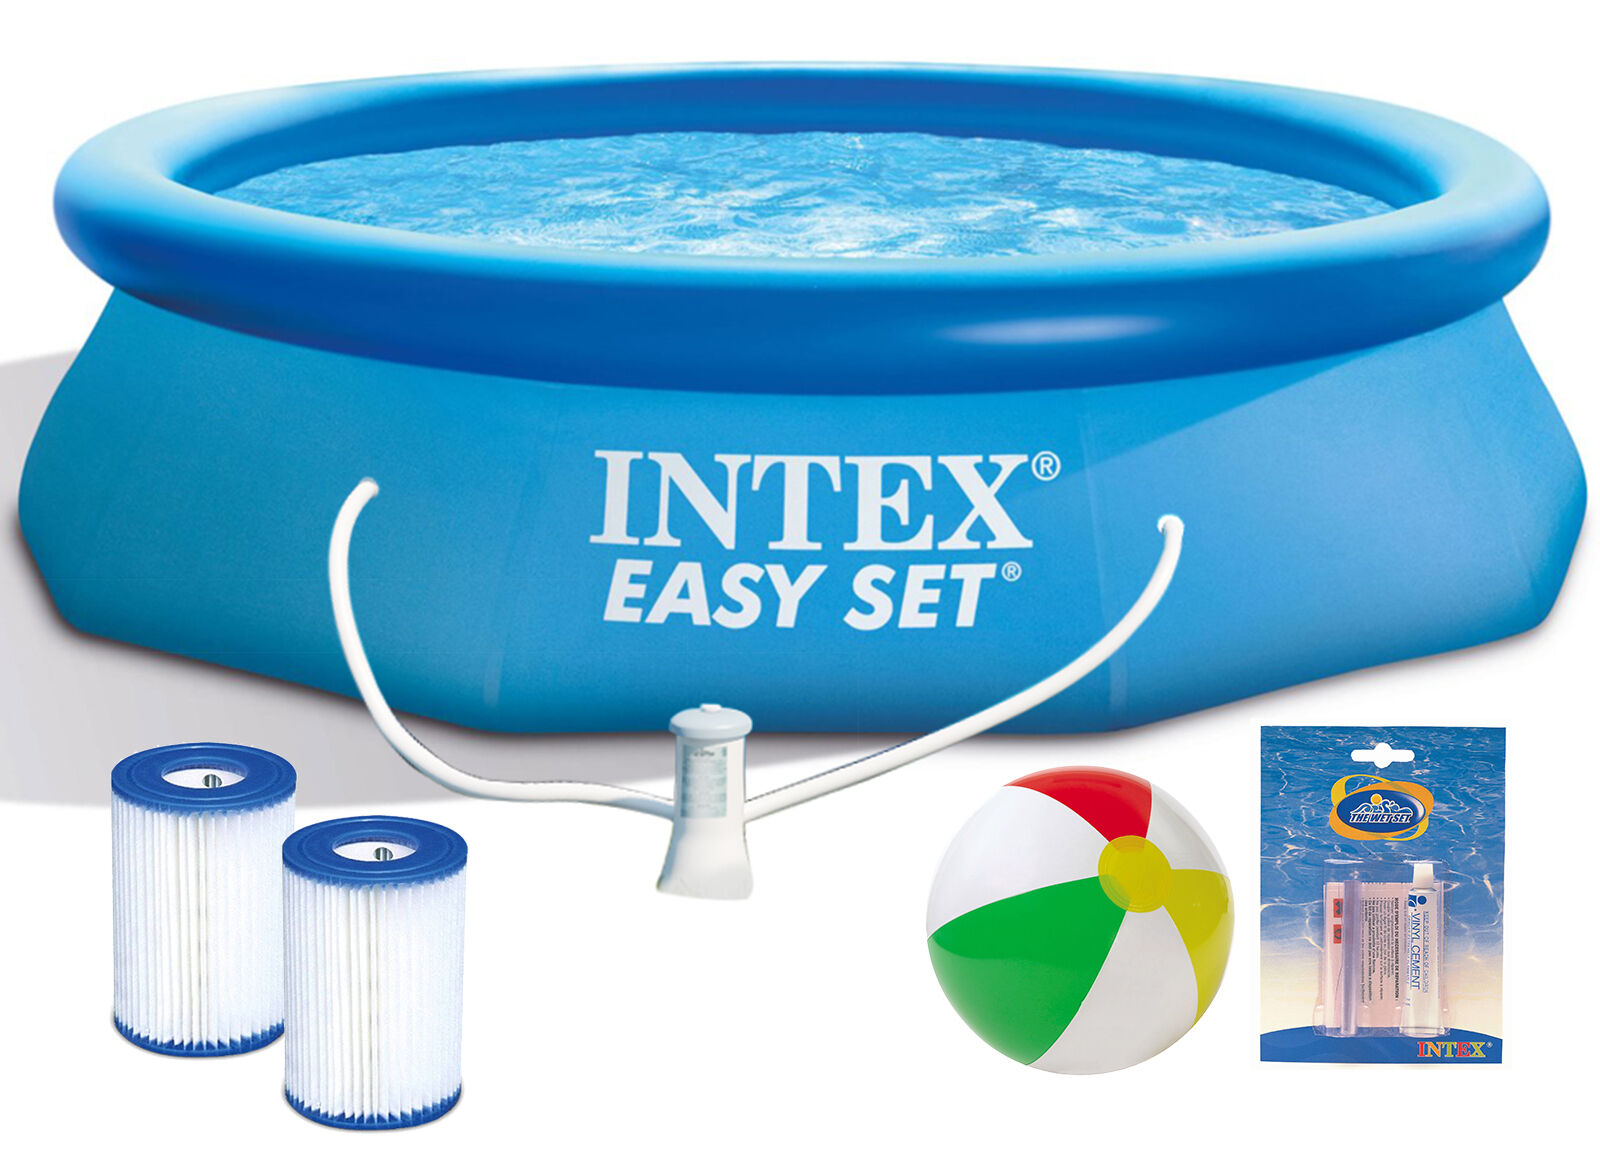 intex easy set swimming pool 366x76 cm schwimmbecken quick up schwimmbad 28132 eur 62 88. Black Bedroom Furniture Sets. Home Design Ideas